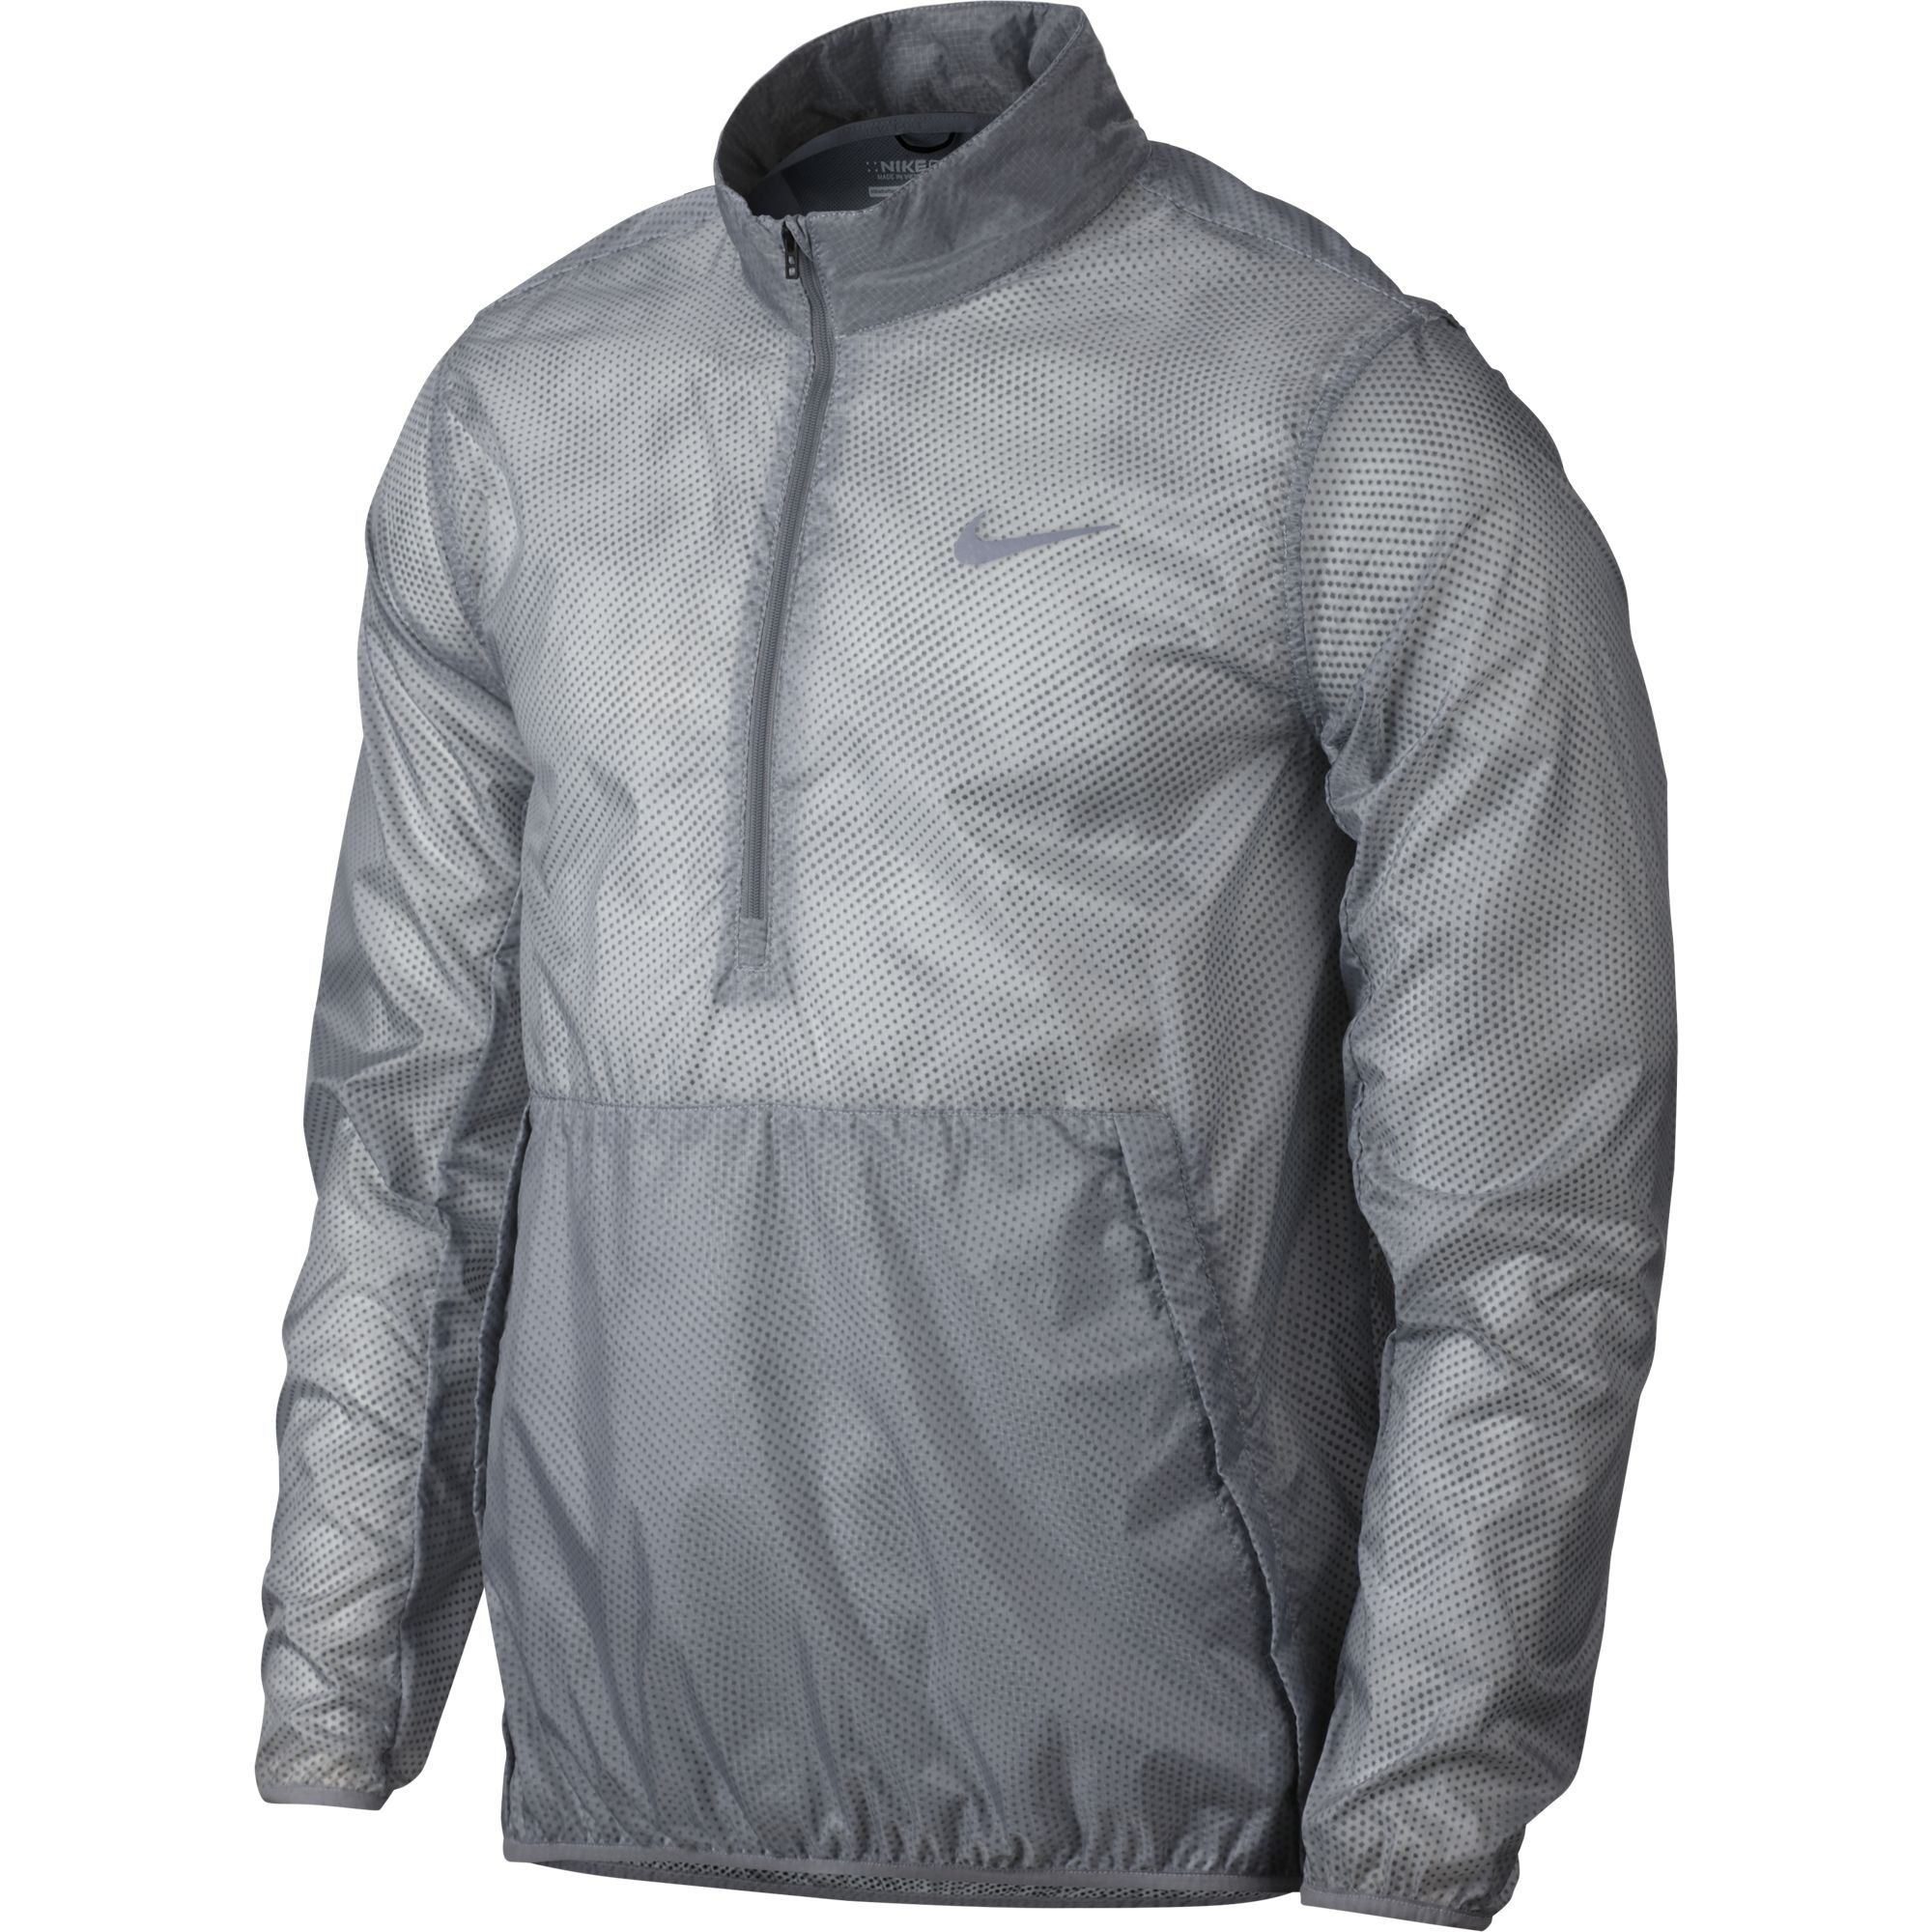 5c2f9033441c Men Golf Clothing     Mens Nike HyperAdapt Shield Lite Golf  Jacket824604012XL     Learn more evaluations of the item by visiting the  web link on the photo.